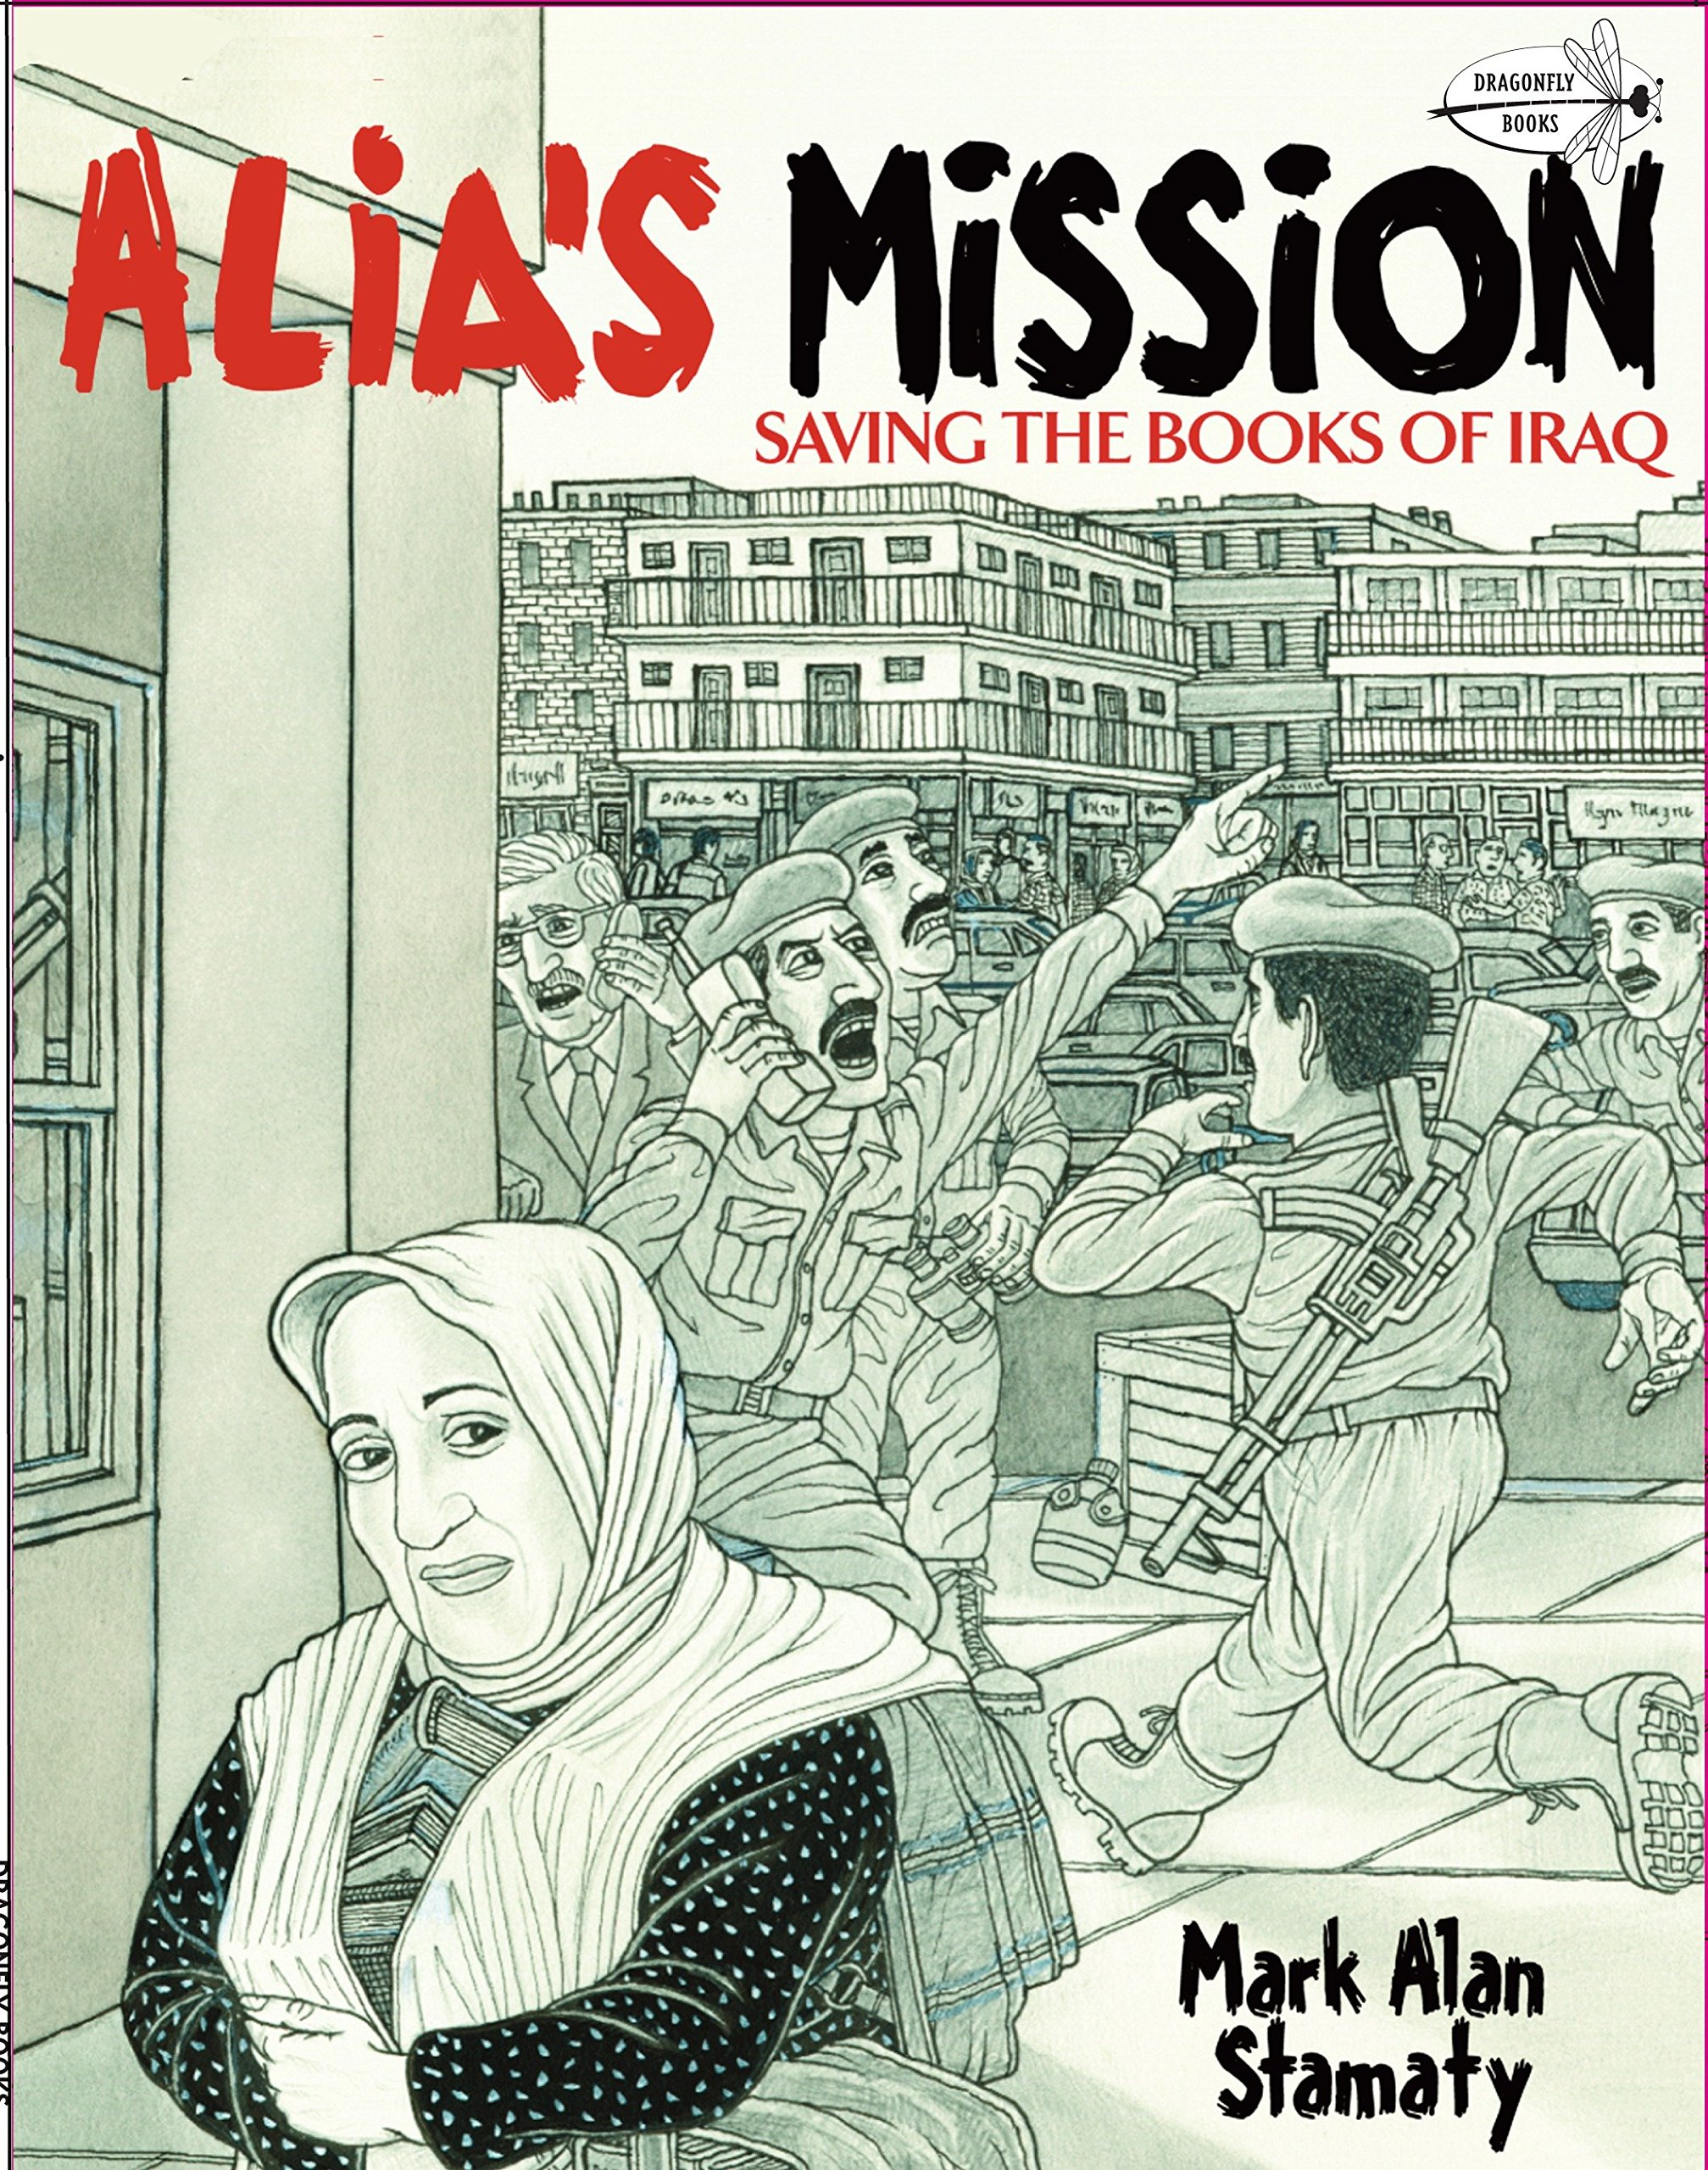 Alia's Mission: Saving the Books of Iraq (Dragonfly Books) Paperback – February 9, 2010 Mark Alan Stamaty 037585763X History - Middle East Baker